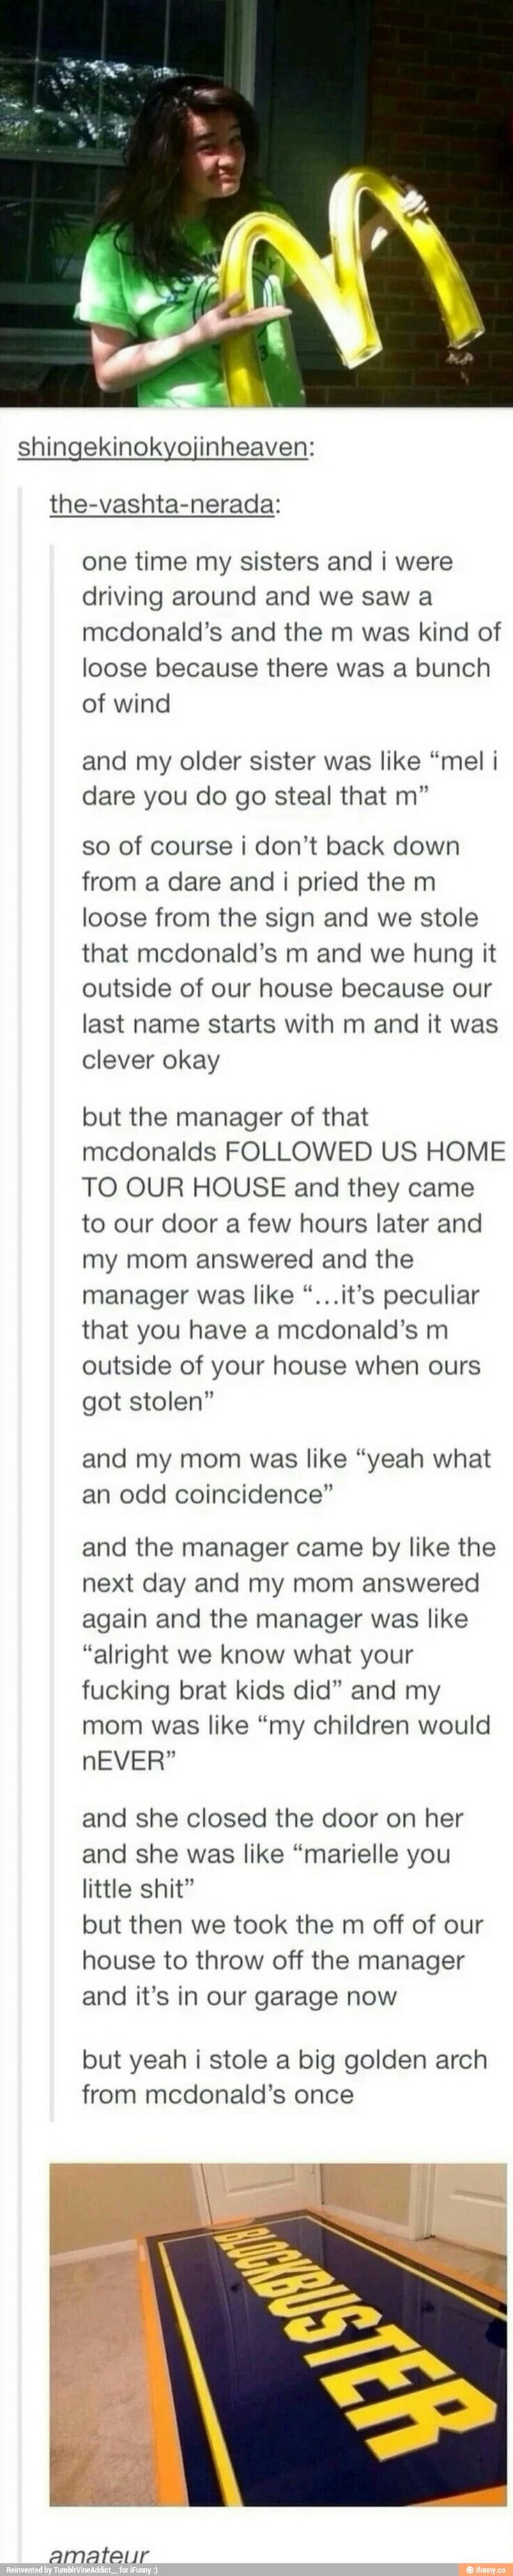 Tumblr - All of this is soooo freaking great